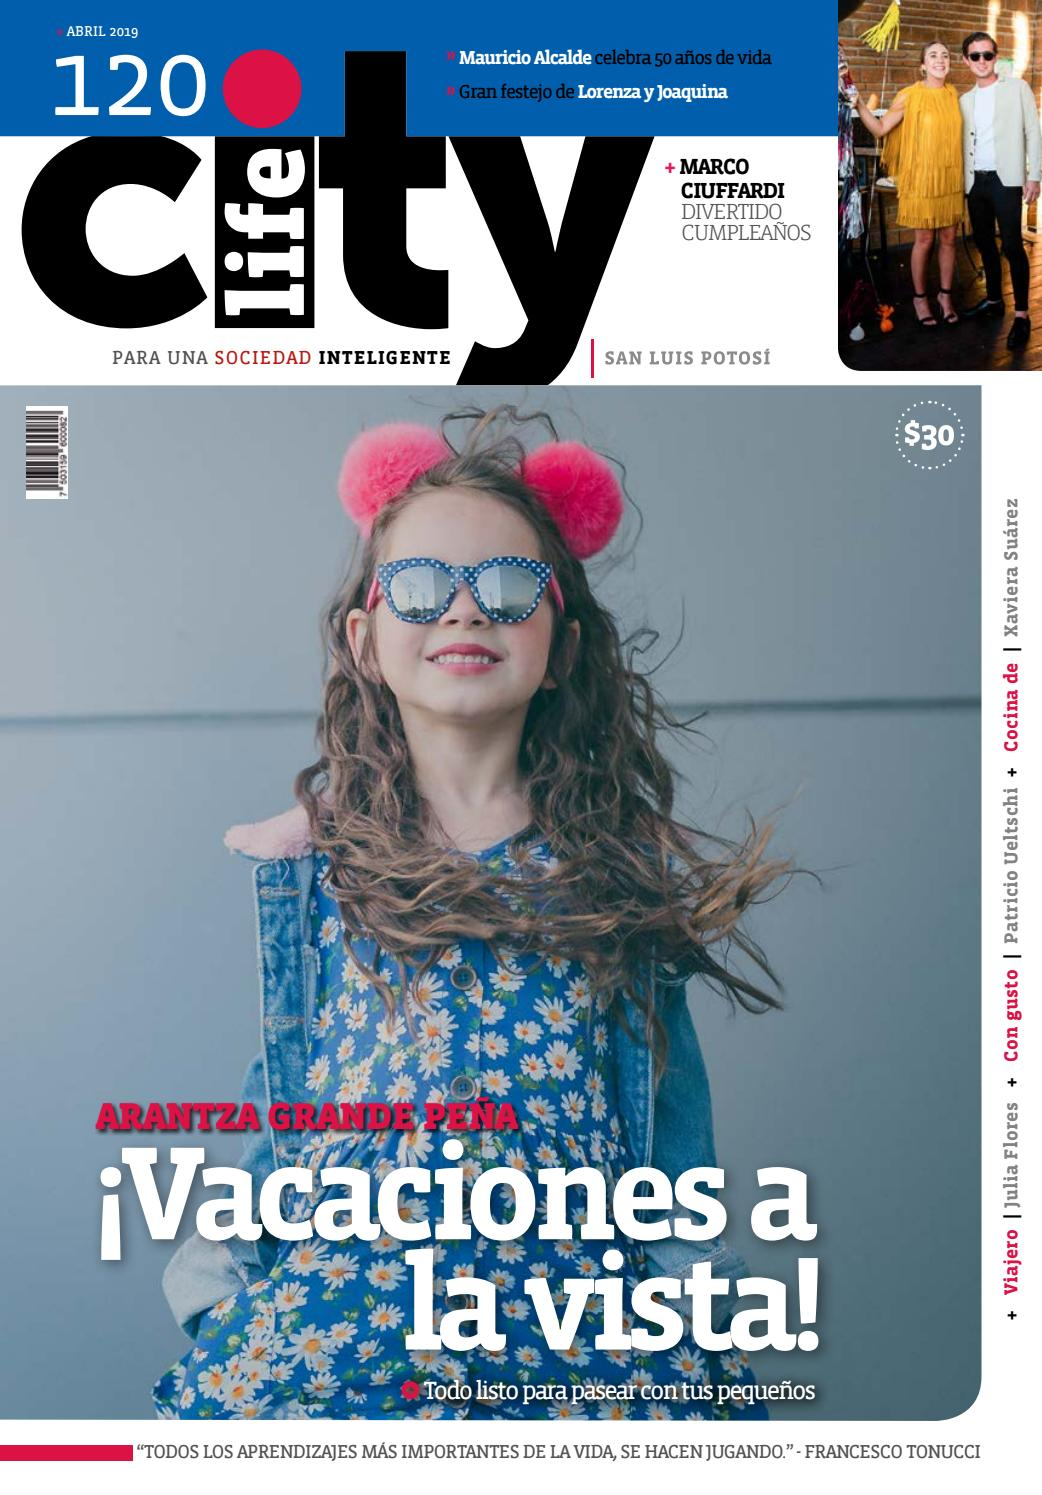 By Issuu Revista City 2019 Edición Luis San Abril 120 hBQrdxtCs